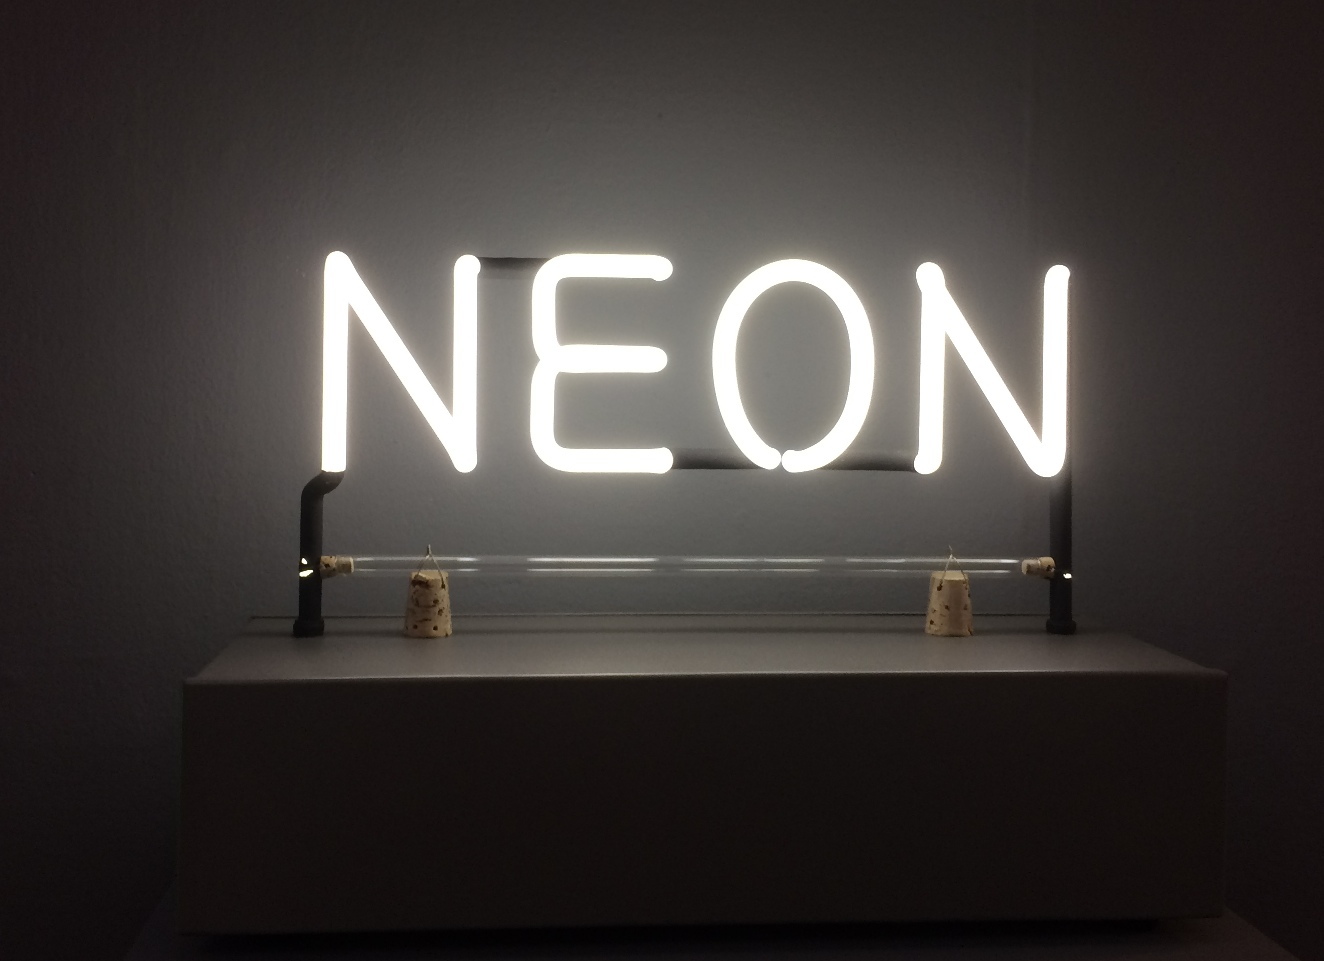 neon light art